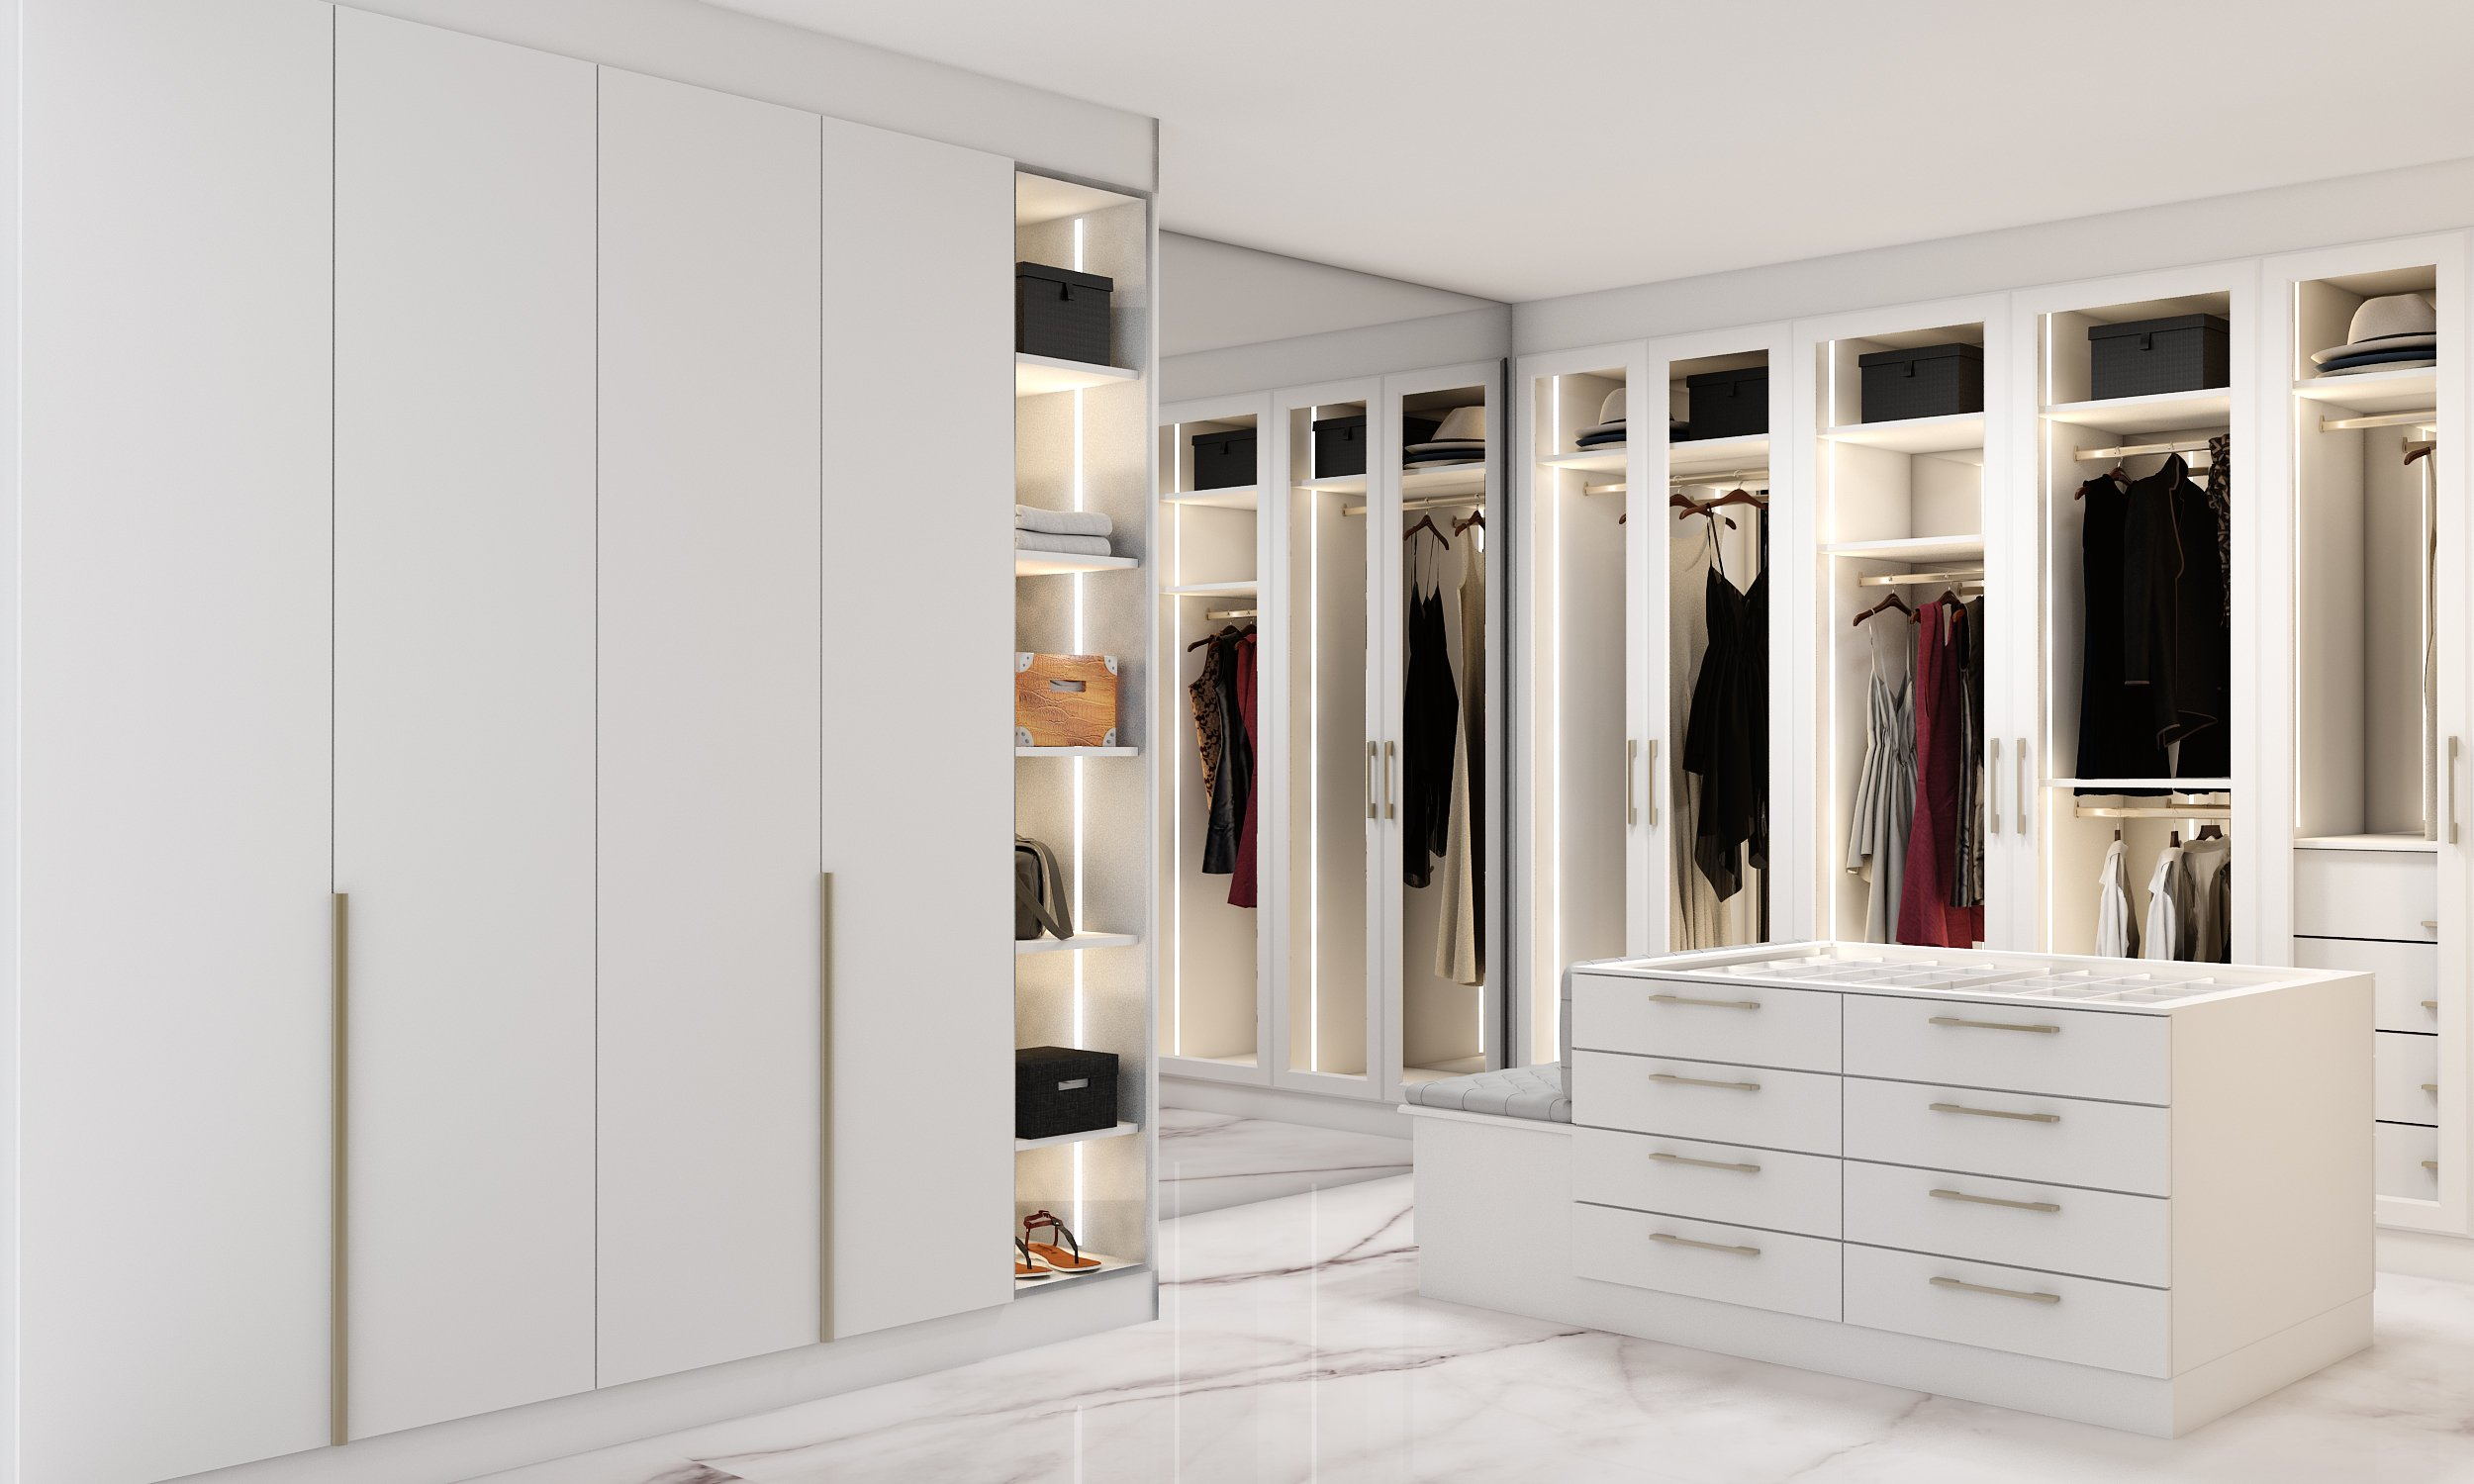 Glass Framed Hinged Wardrobe in White Finish With Mirror Back & Dressing Island